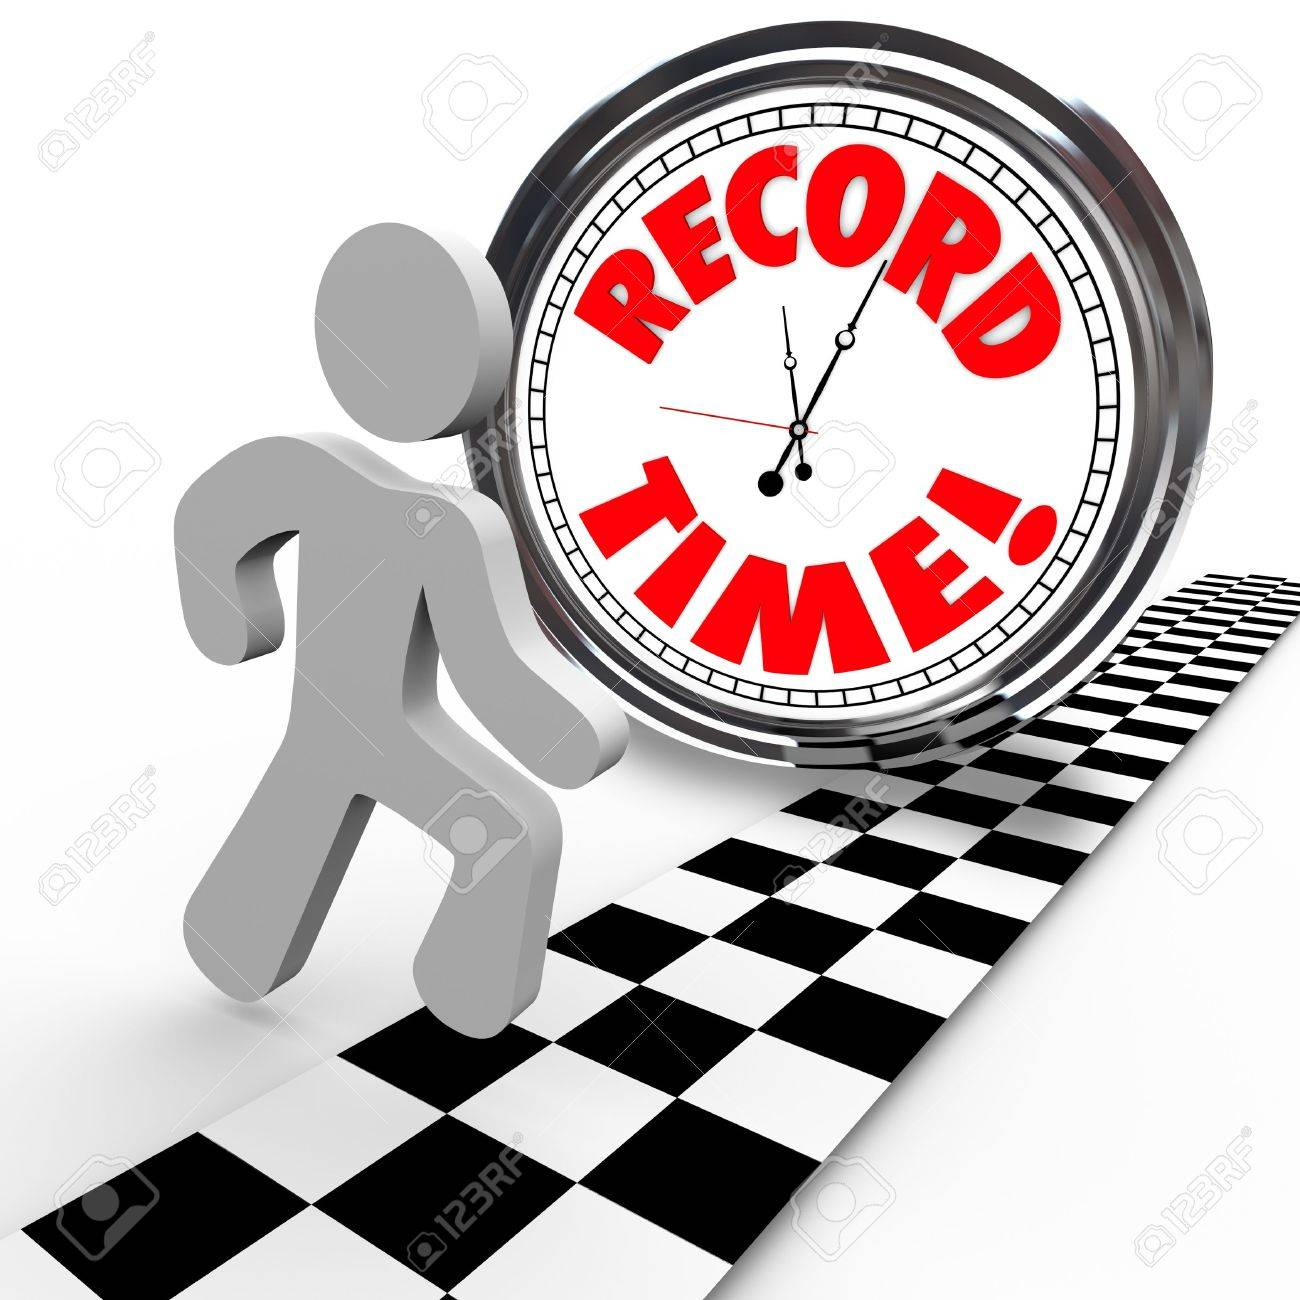 The words Record Time on a clock with a person reaching the finish line to achieve or accomplish a new personal best timing in completing a race or objective Stock Photo - 13749653